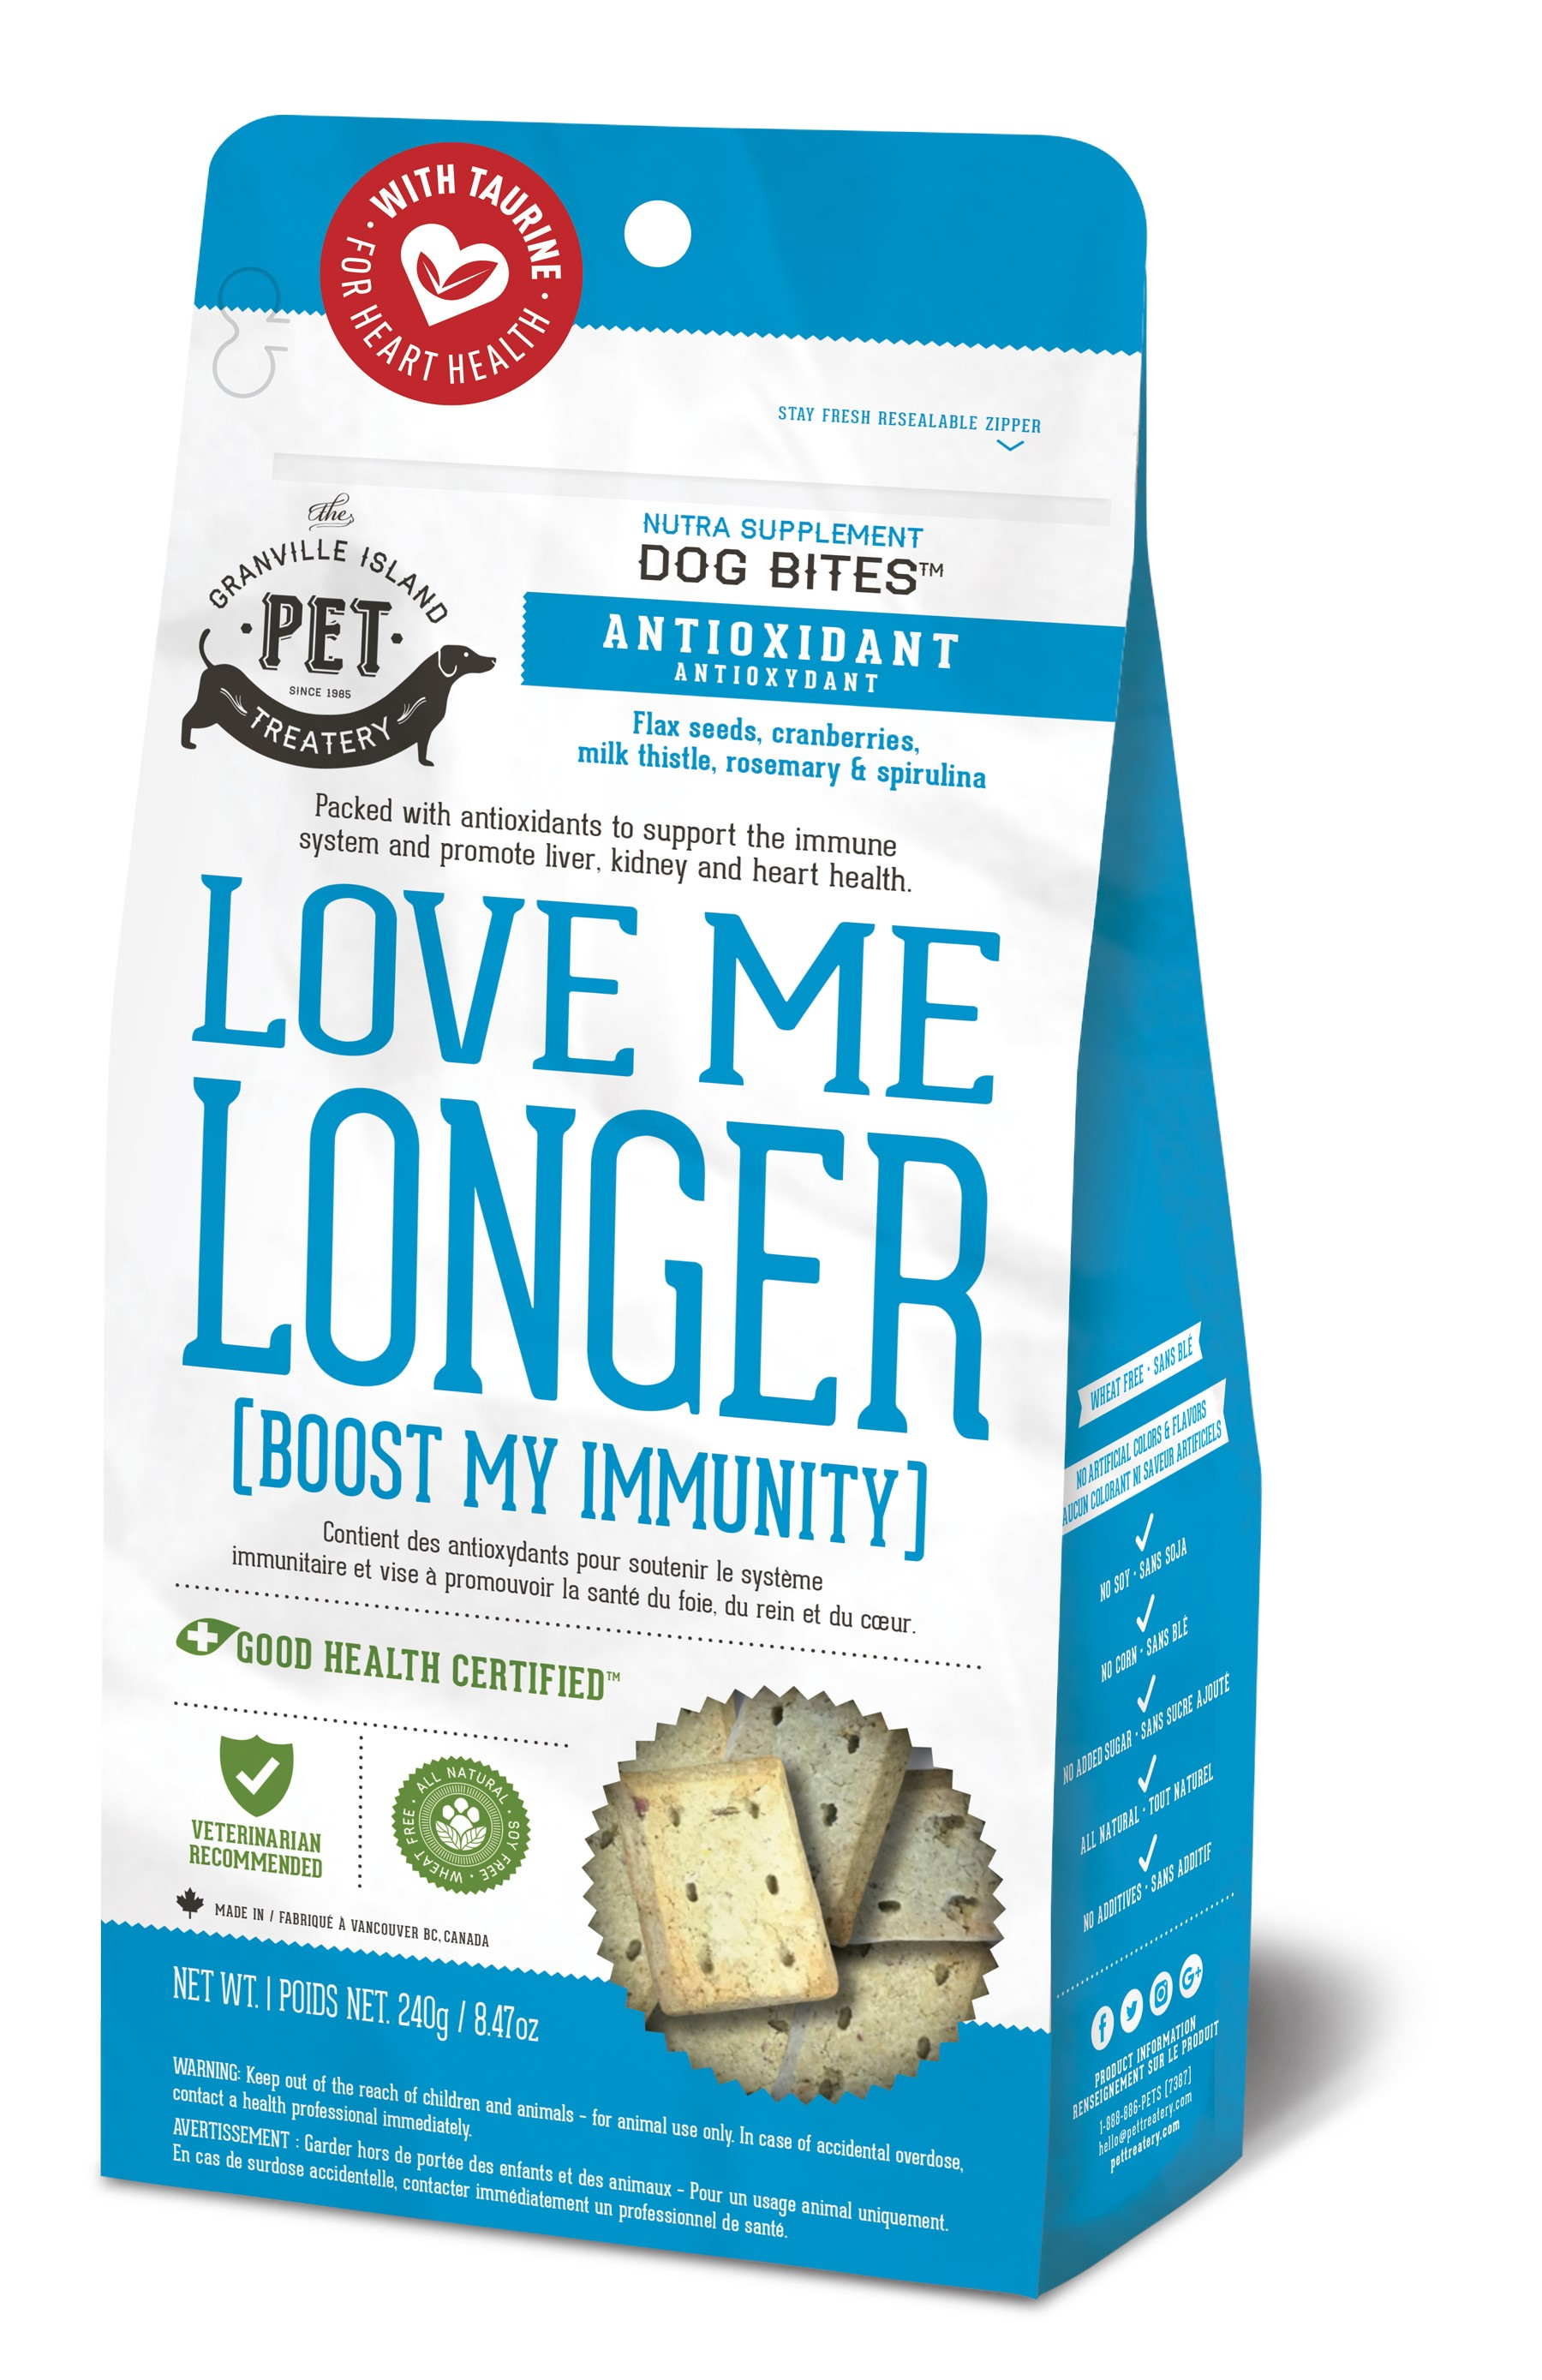 Granville Island Pet Treatery Antioxidant Love Me Longer (Boost my Immunity) Image